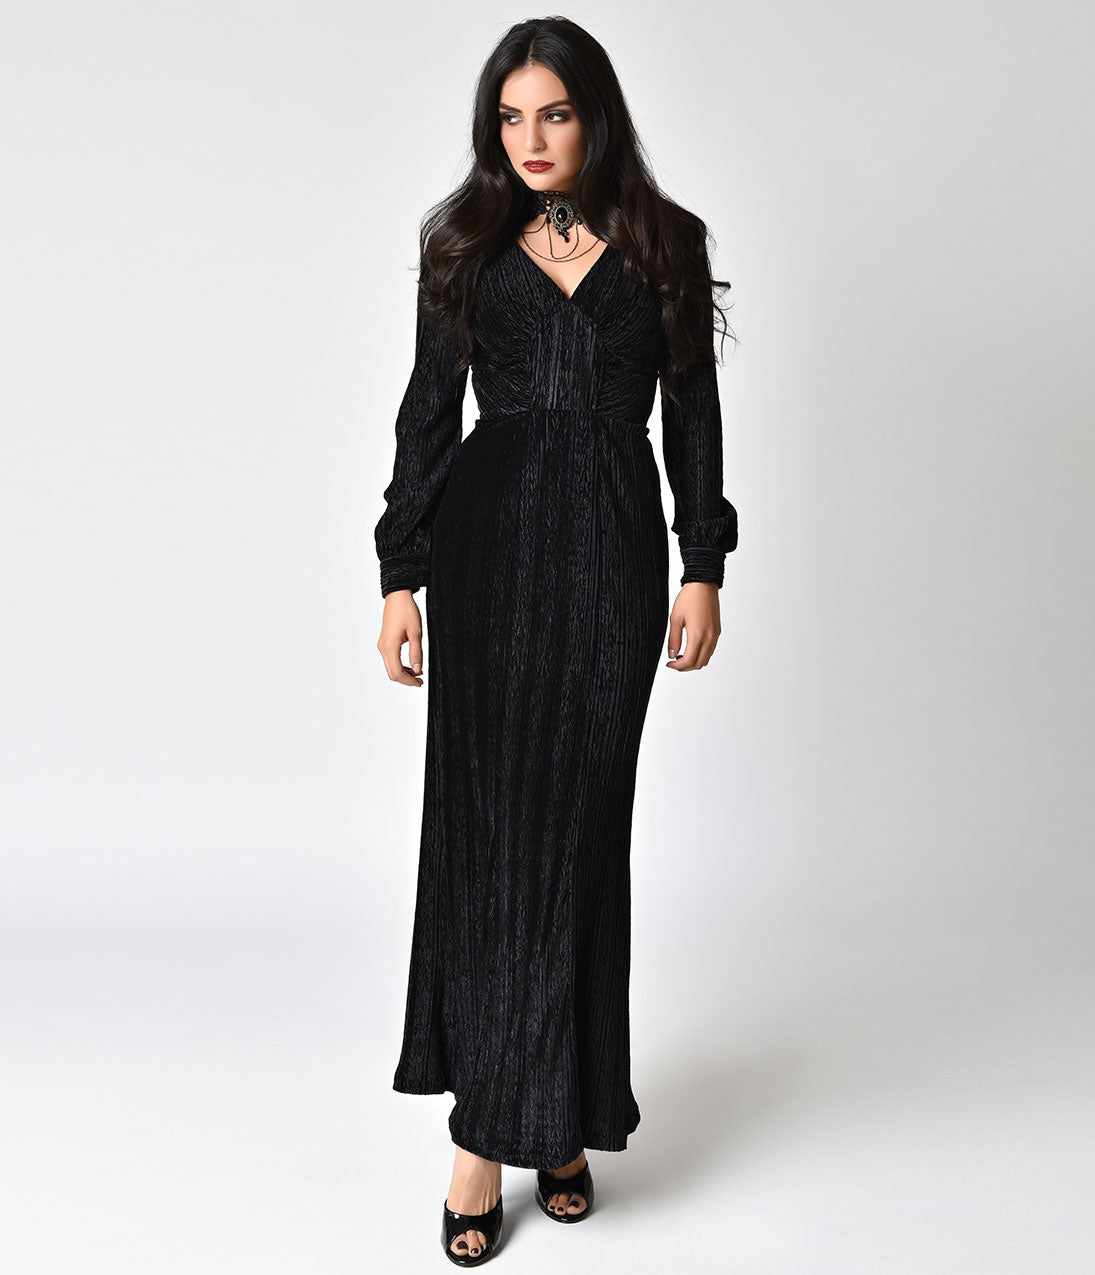 1930s Evening Dresses | Old Hollywood Dress Voodoo Vixen 1930S Style Jet Black Velvet Long Sleeve Maxi Dress $78.00 AT vintagedancer.com